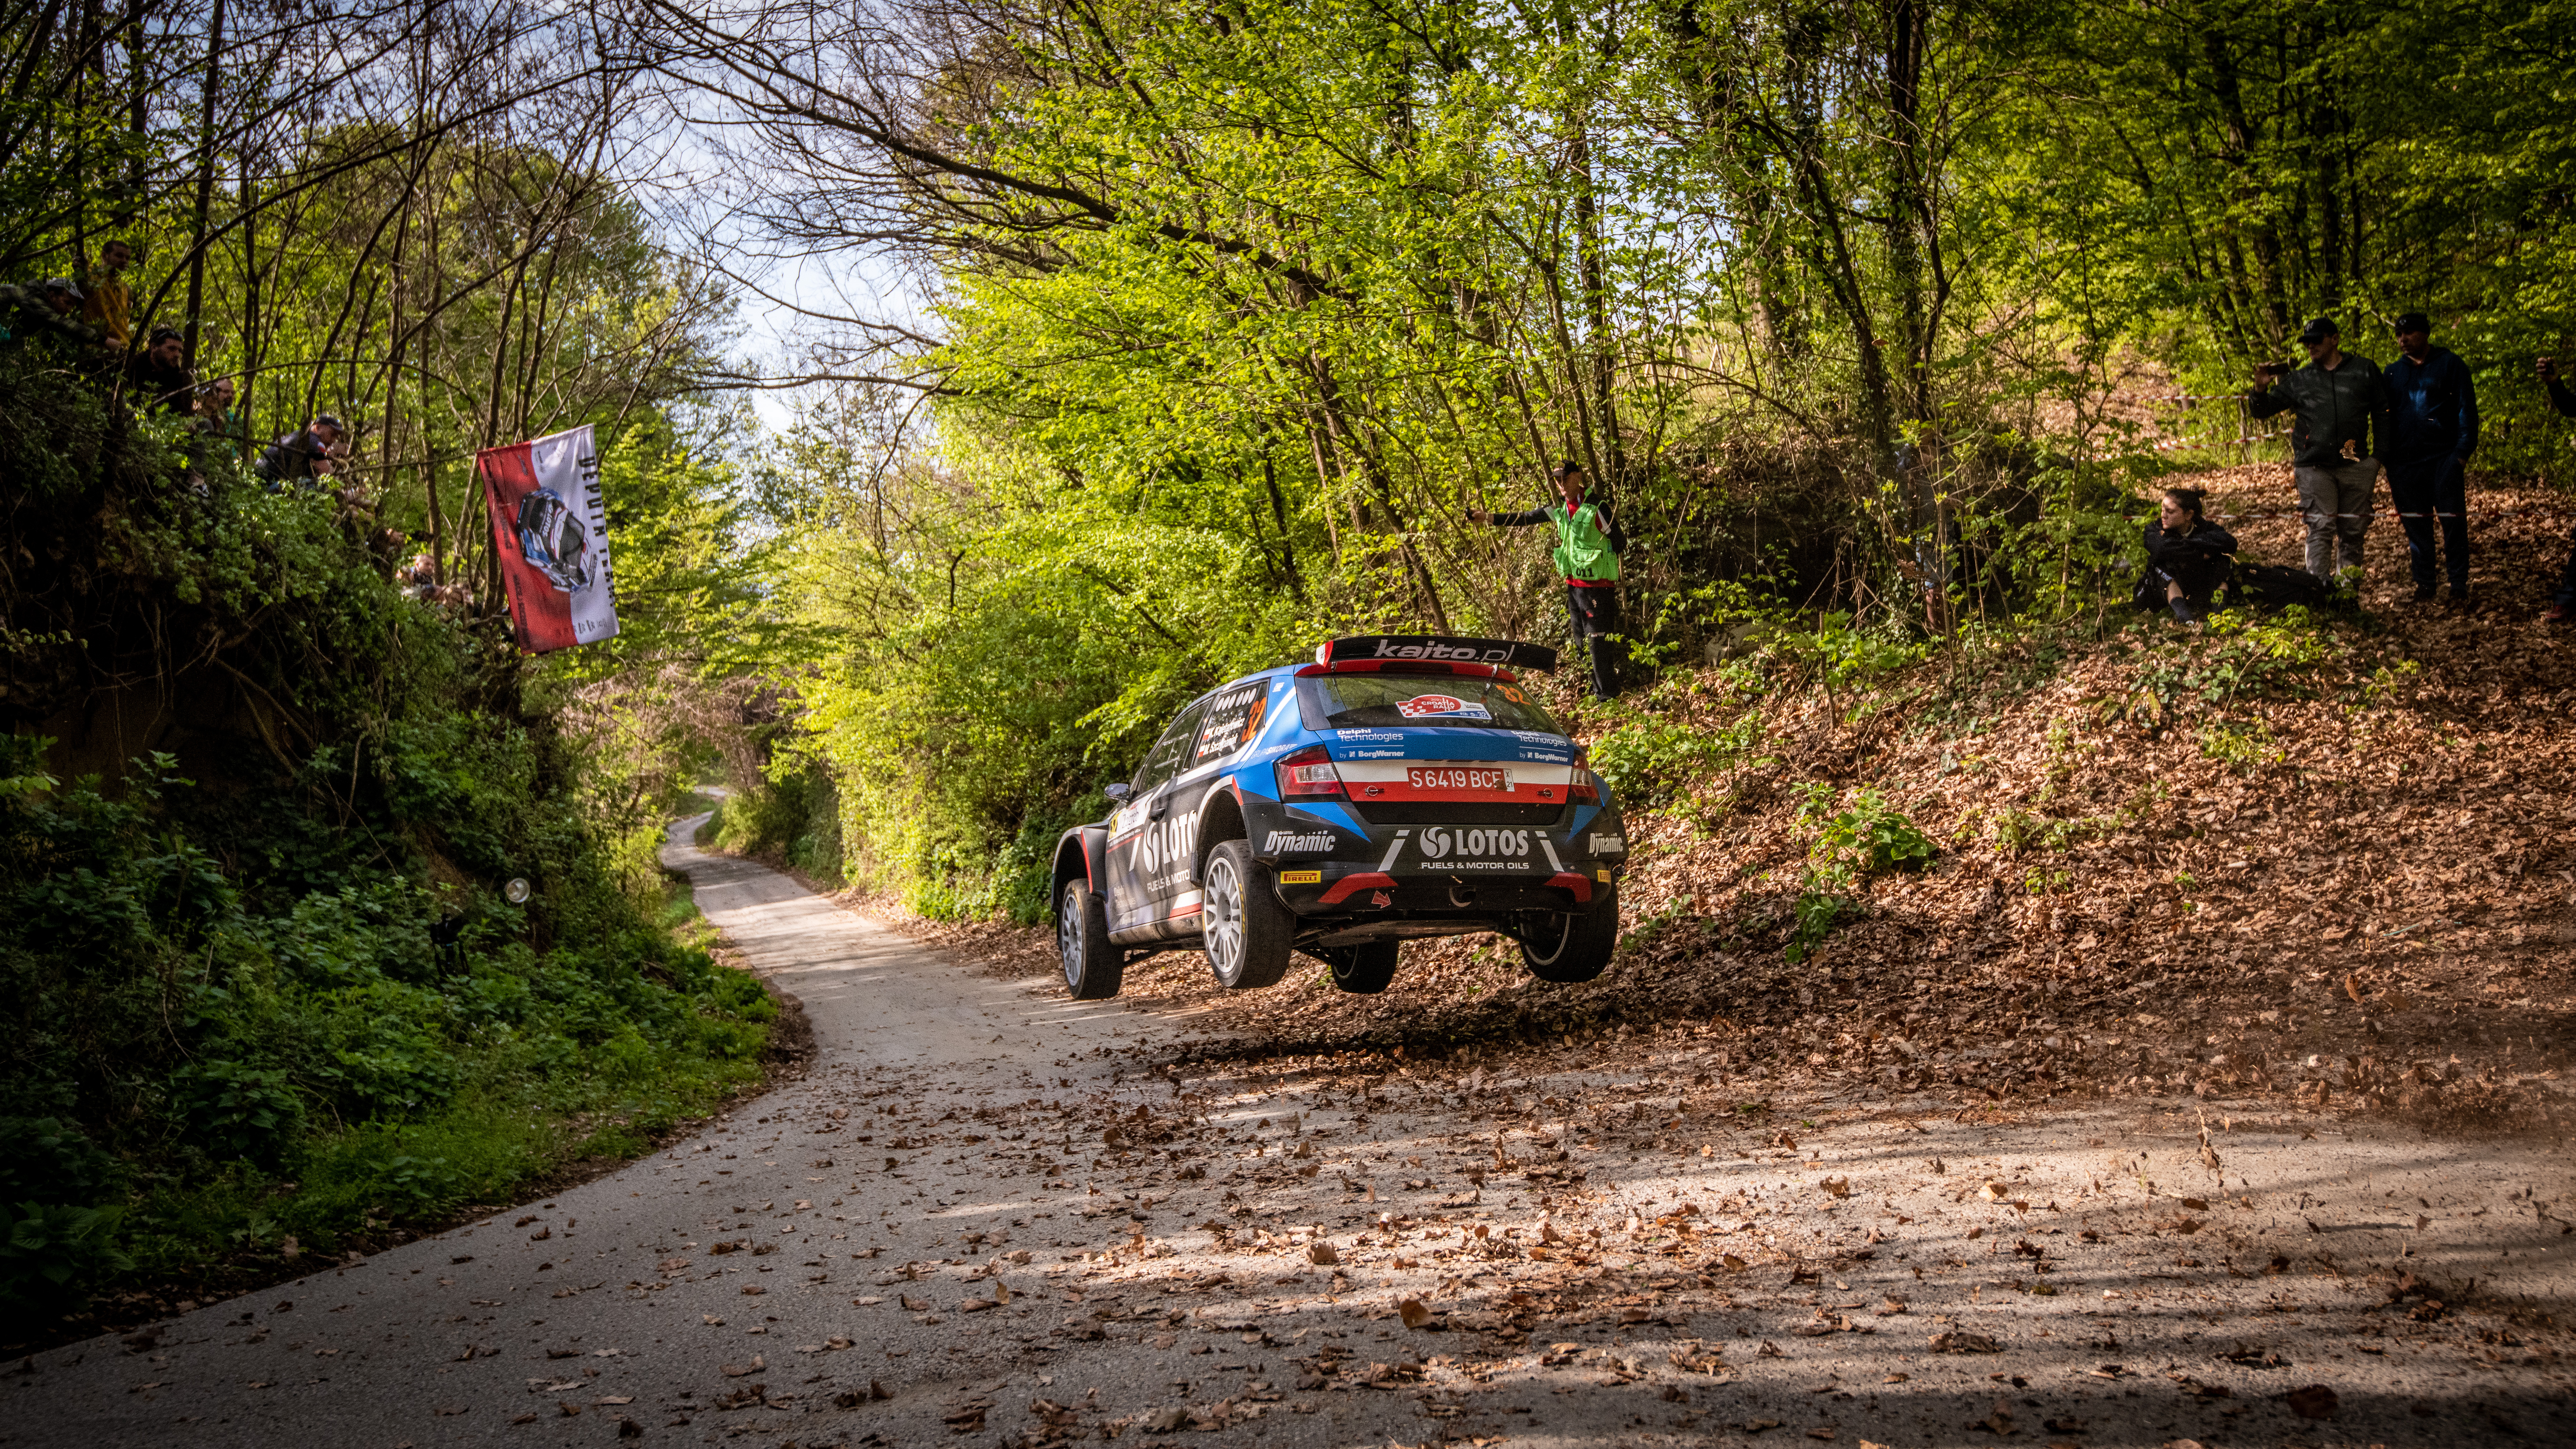 Rally Croatia: SKODA crews score 1-2 in WRC3, Andreas Mikkelsen defends WRC2 overall lead - Image 7